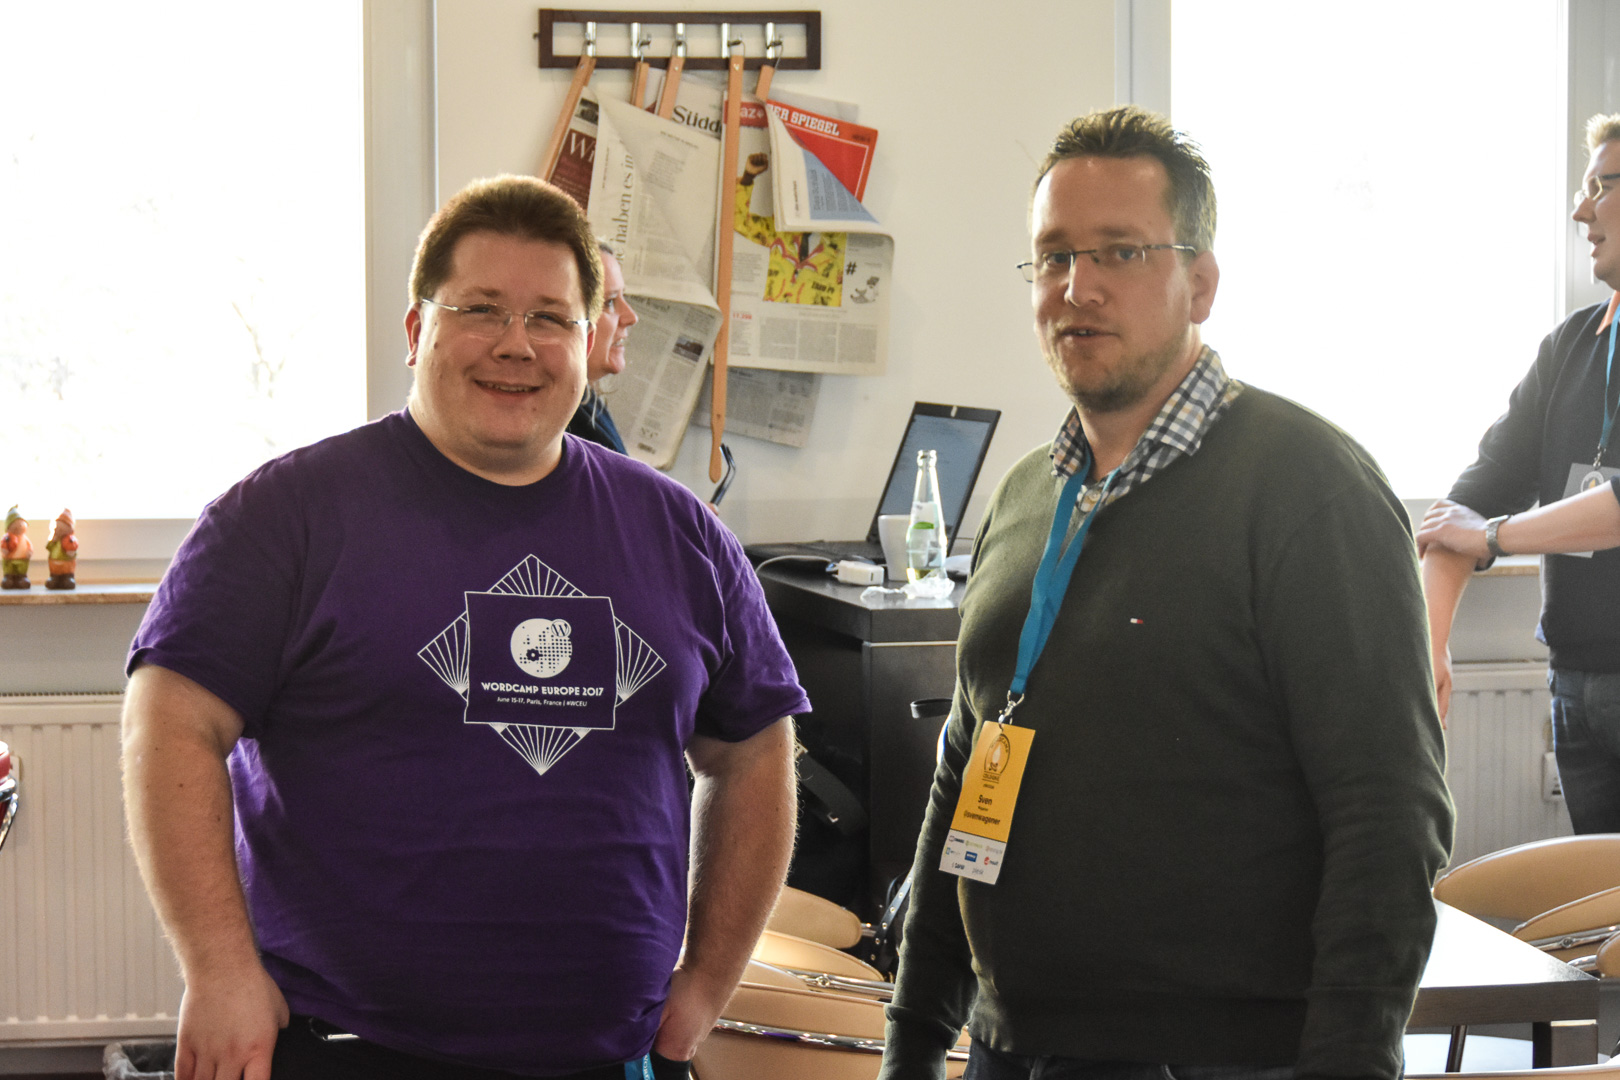 WordCamp Cologne, co-organizers Thomas Brühl and Sven Wagener